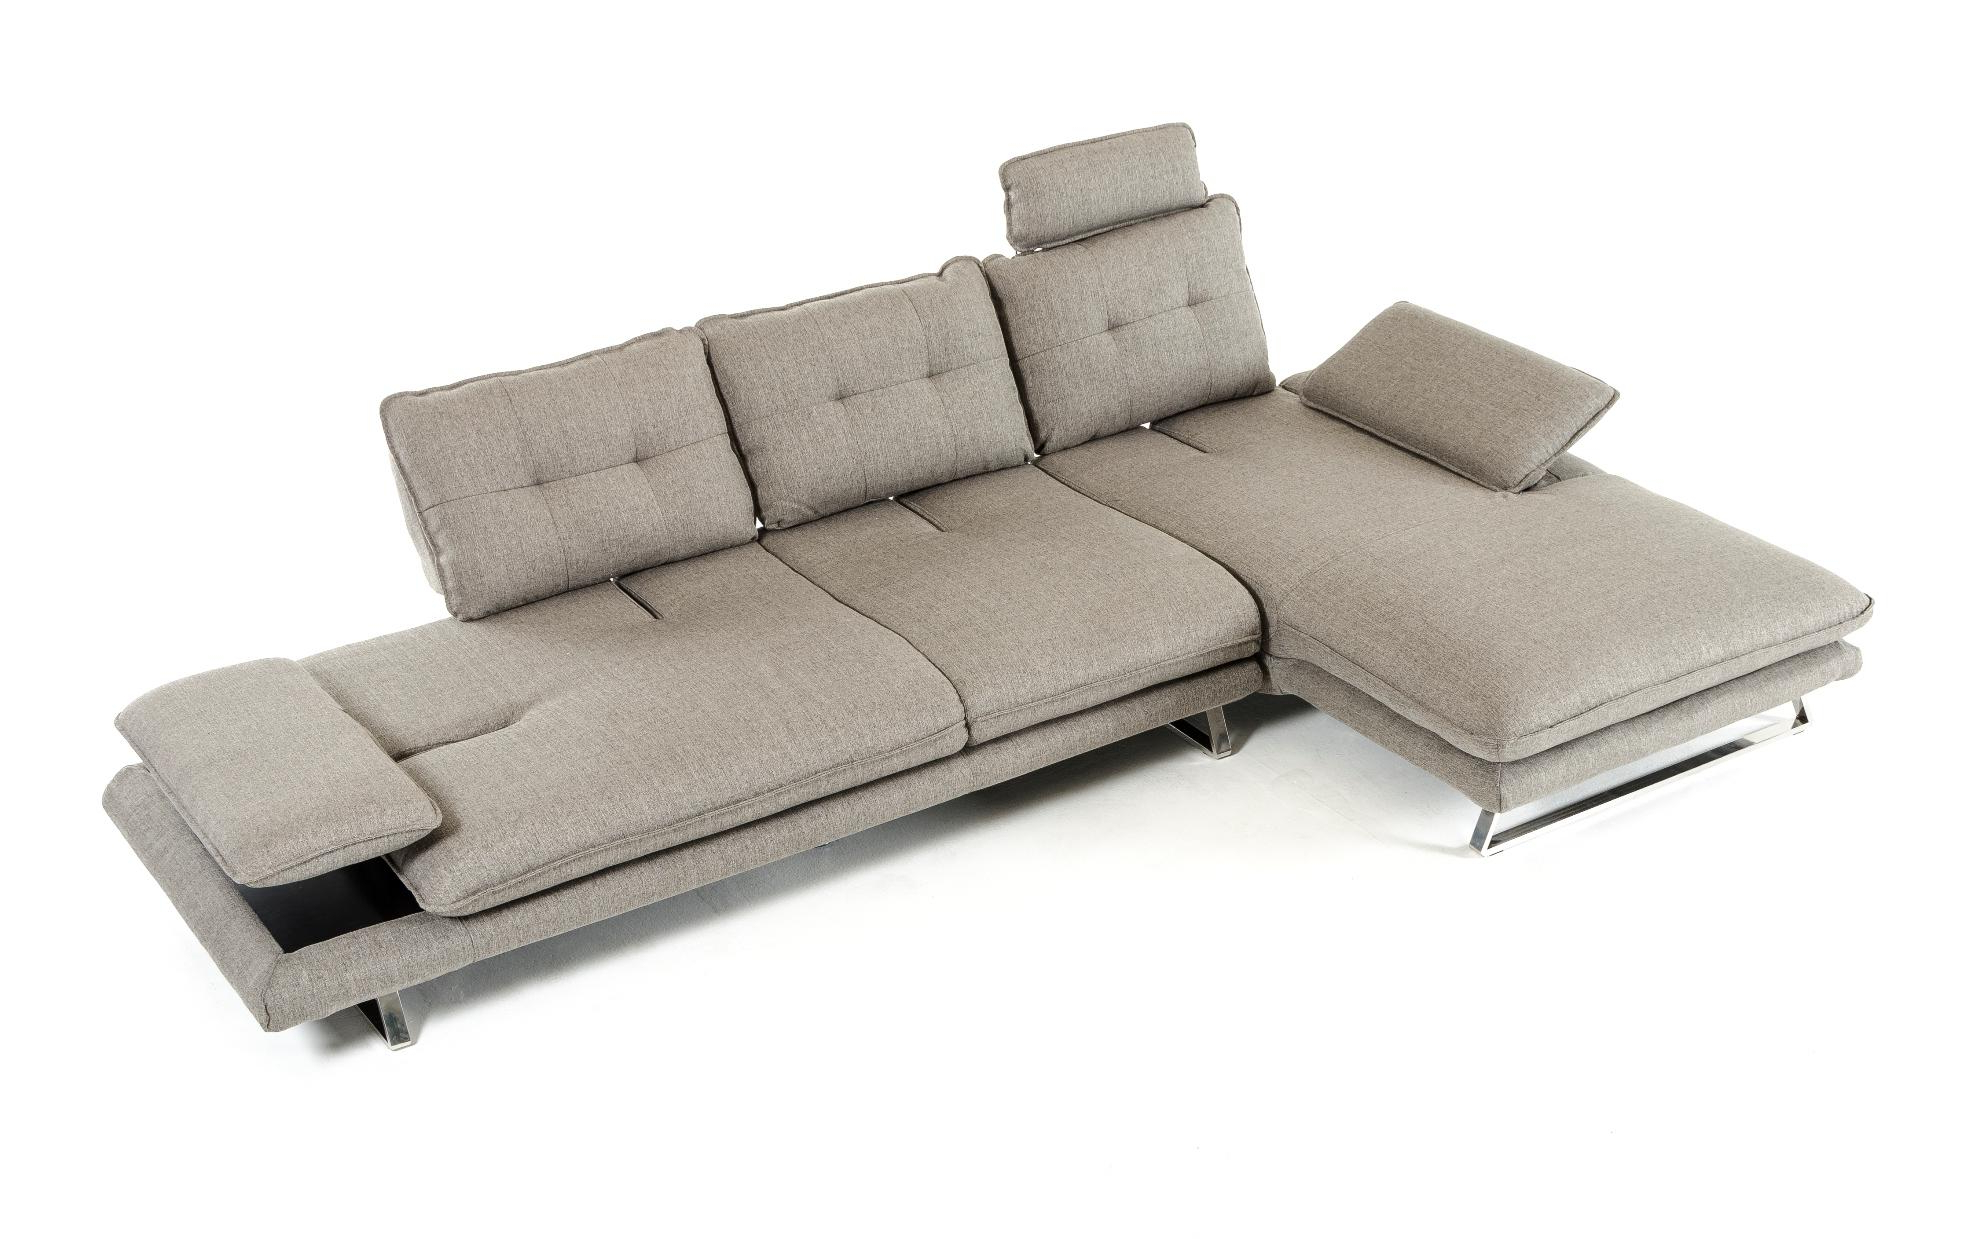 Favorite 2pc Connel Modern Chaise Sectional Sofas Black Inside Grey Fabric Tufted Sectional Sofa Vig Divani Casa Porter (View 15 of 20)